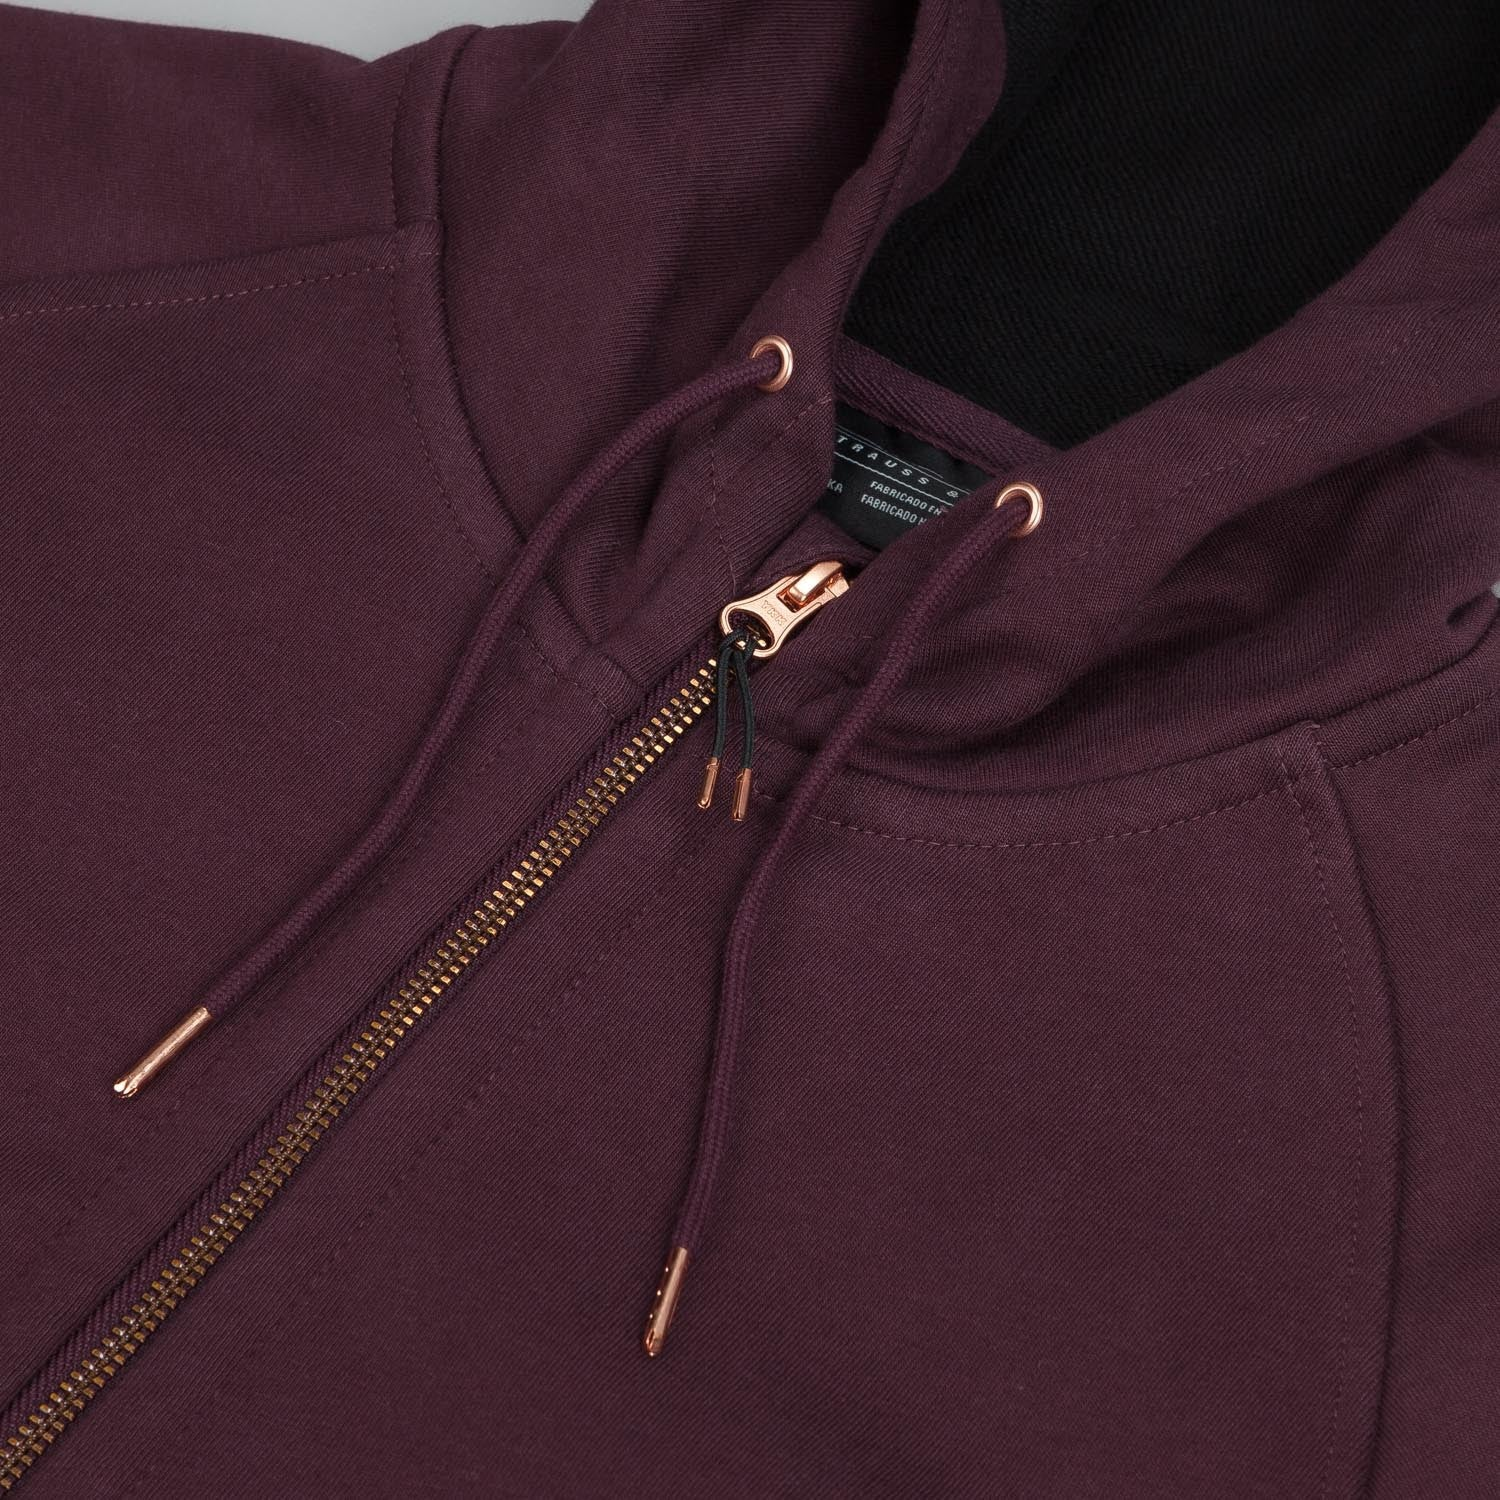 Levi's® Commuter Windres Hooded Sweatshirt Potion